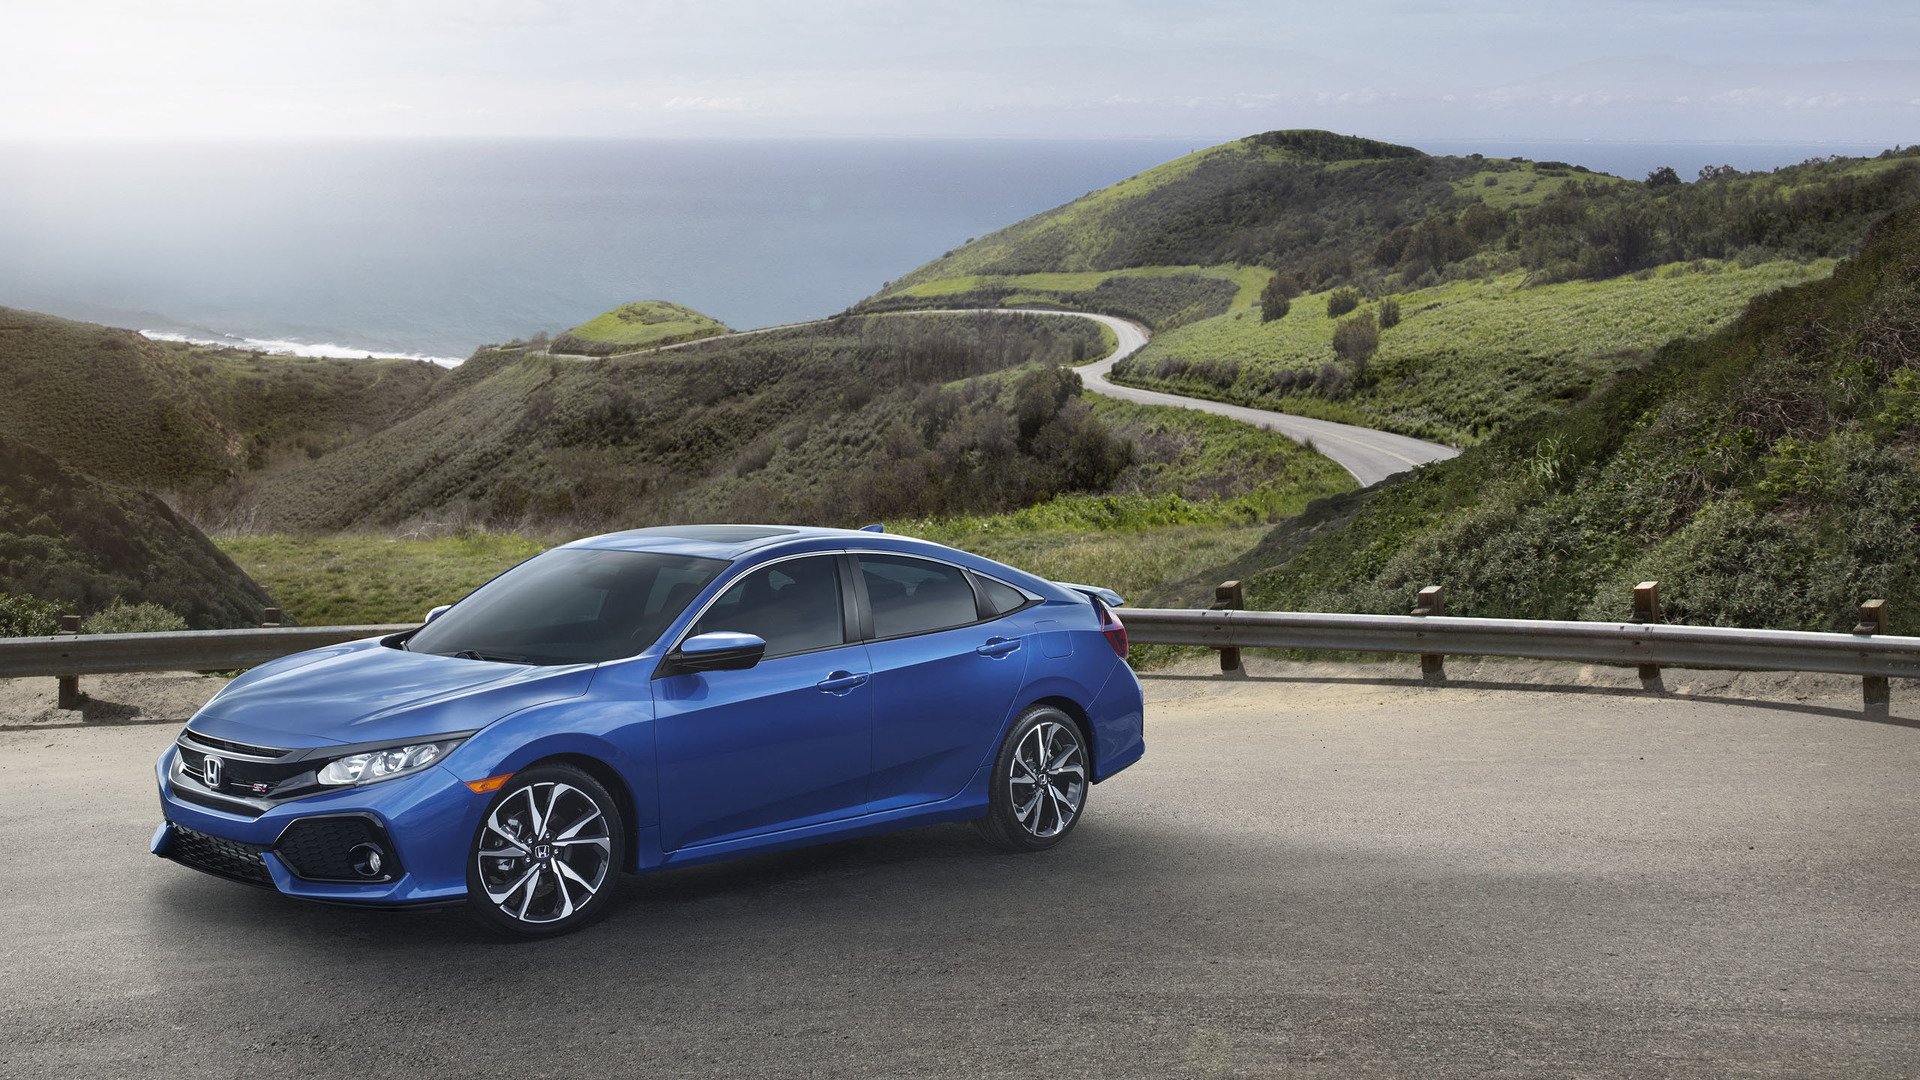 2017 honda civic si turbo motorla geldi for 2017 honda civic si turbo